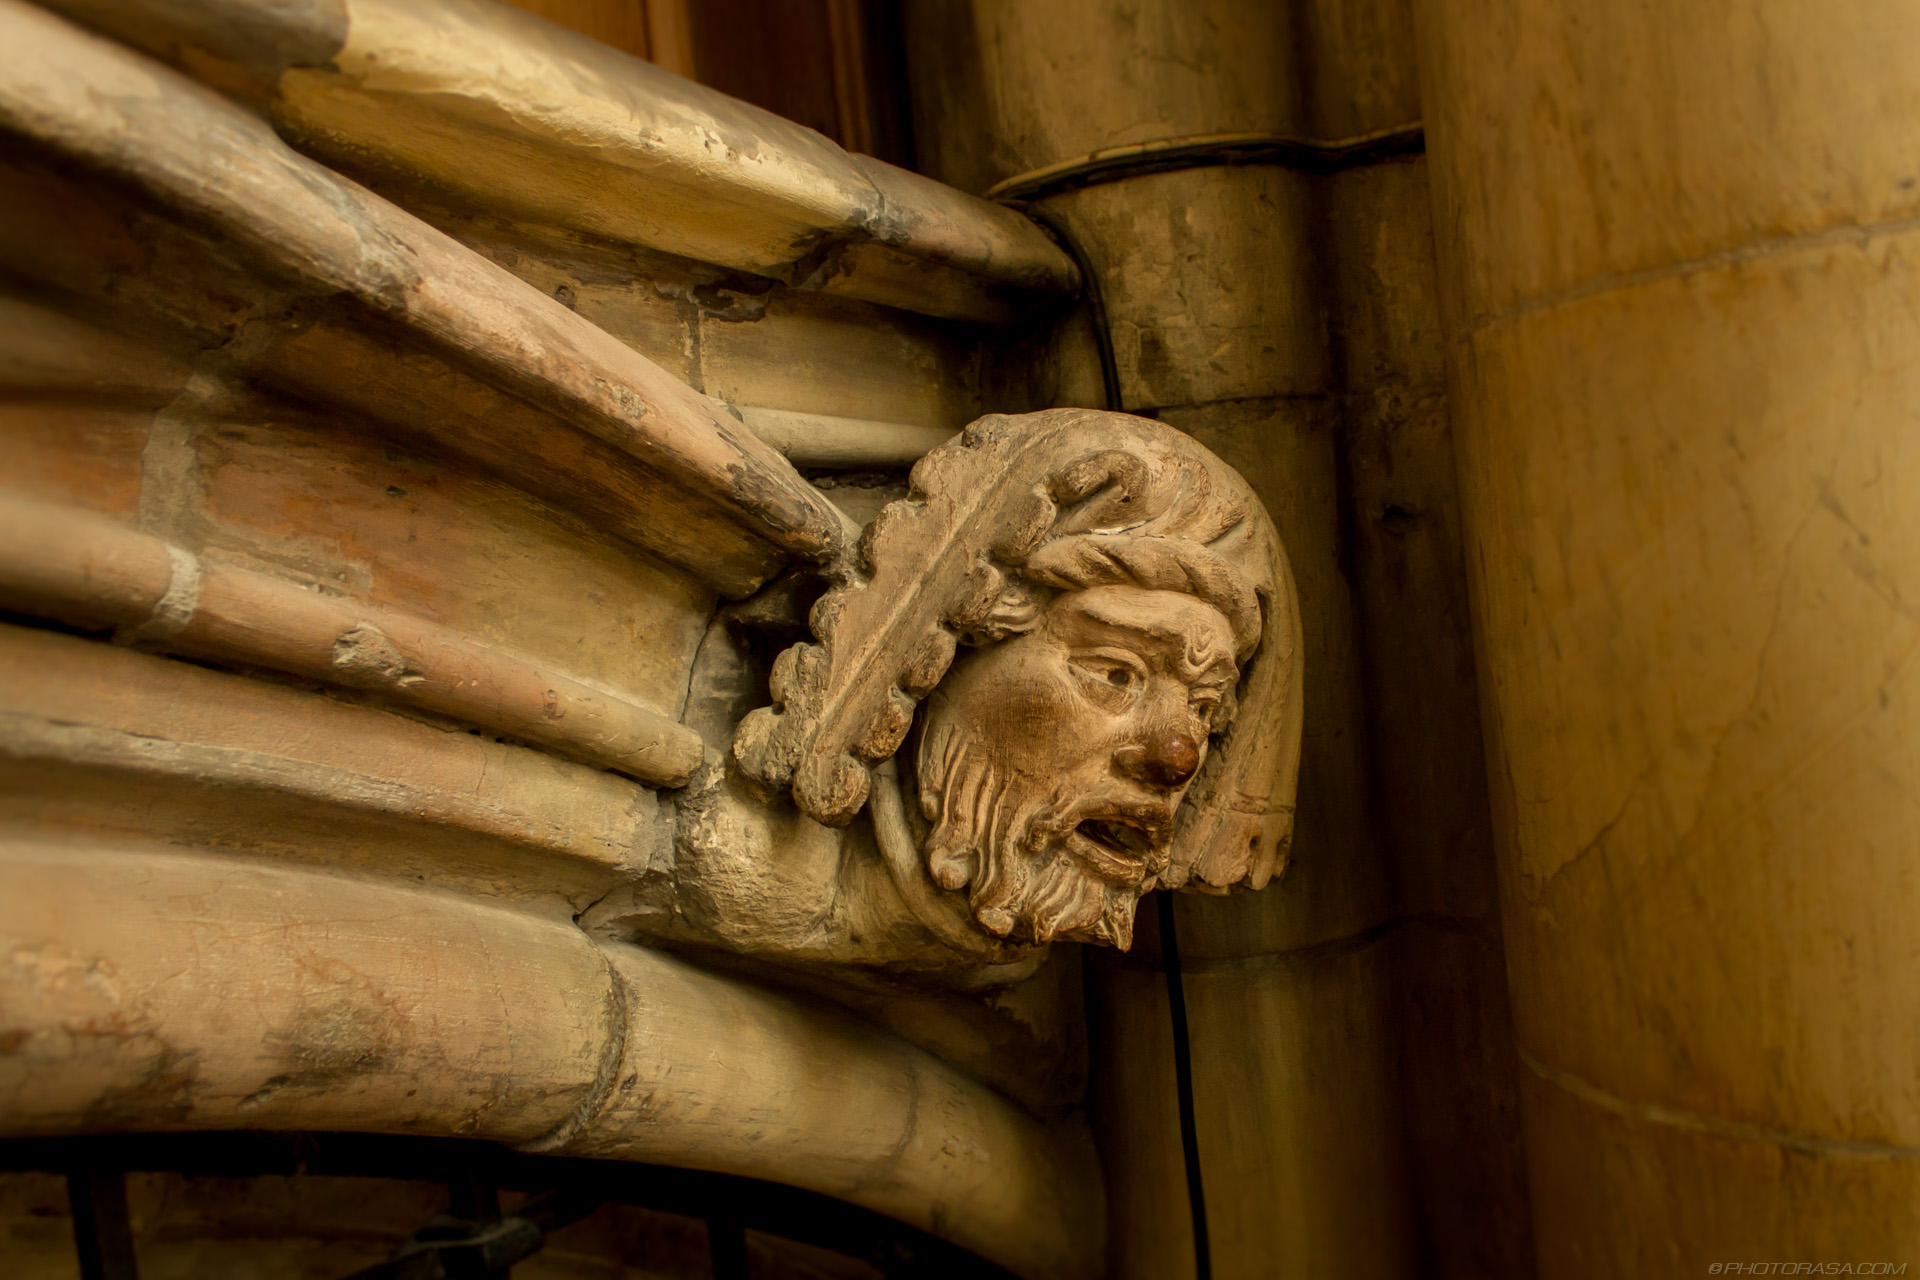 http://photorasa.com/yorkminster-cathedral/gargoyle-man/